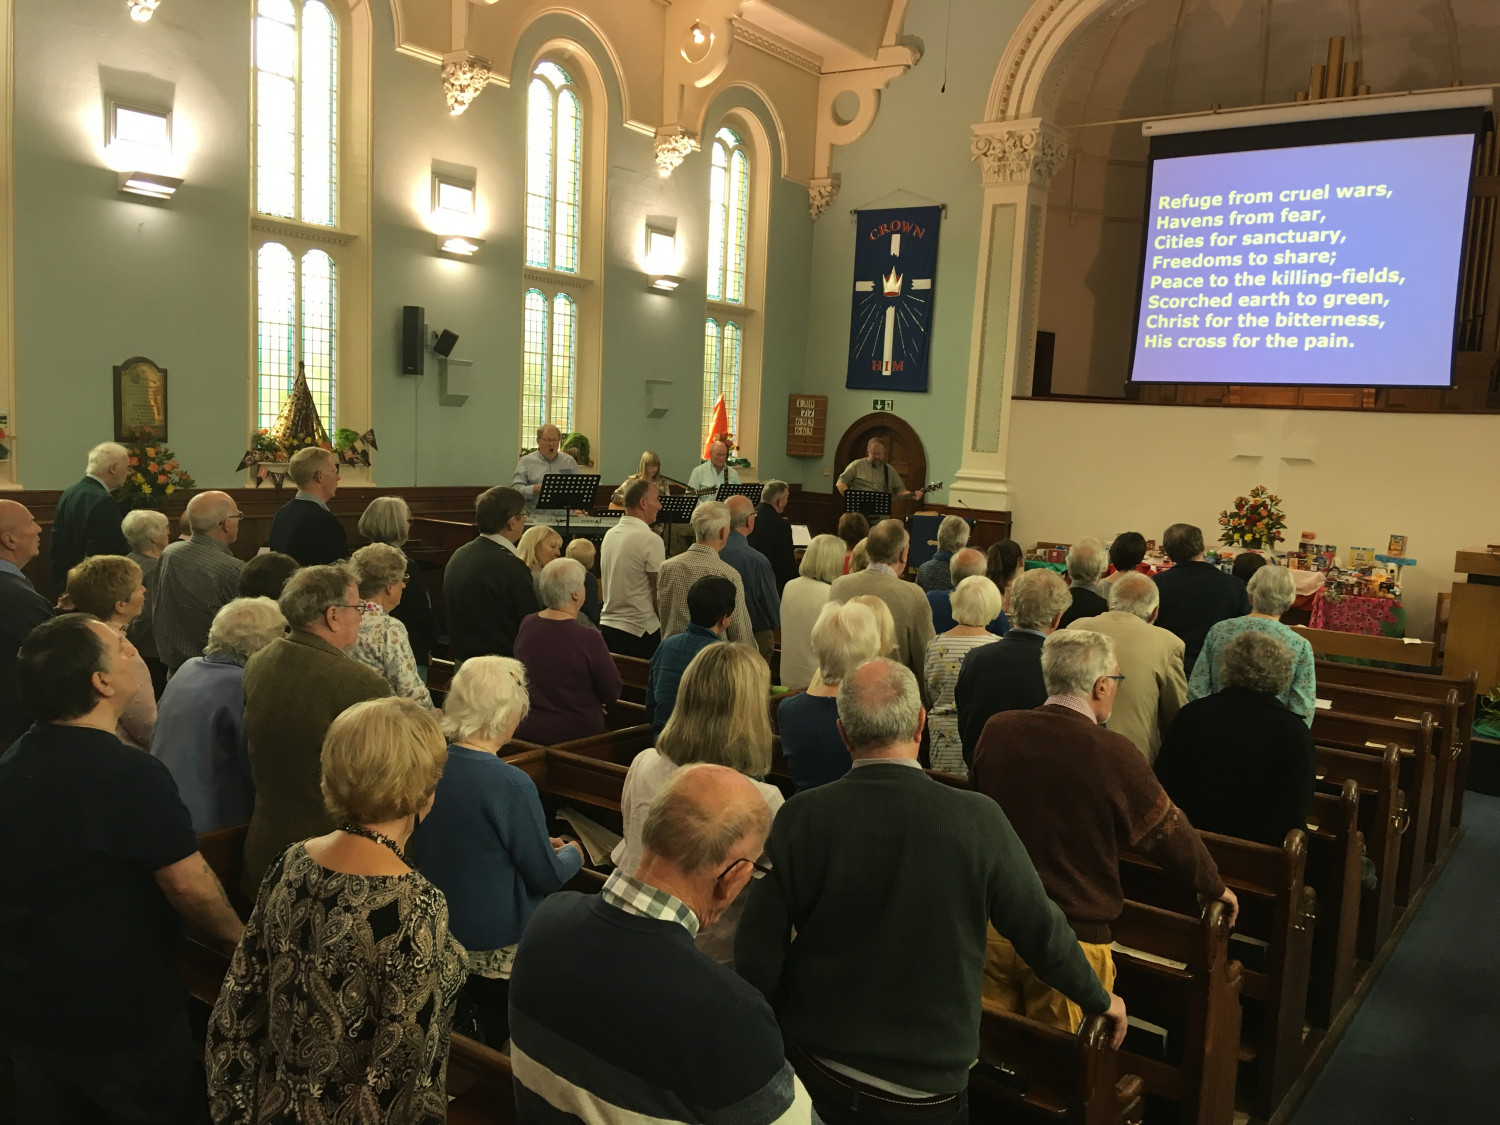 Photo of the inside of Ashbourne Methodist Church during a service